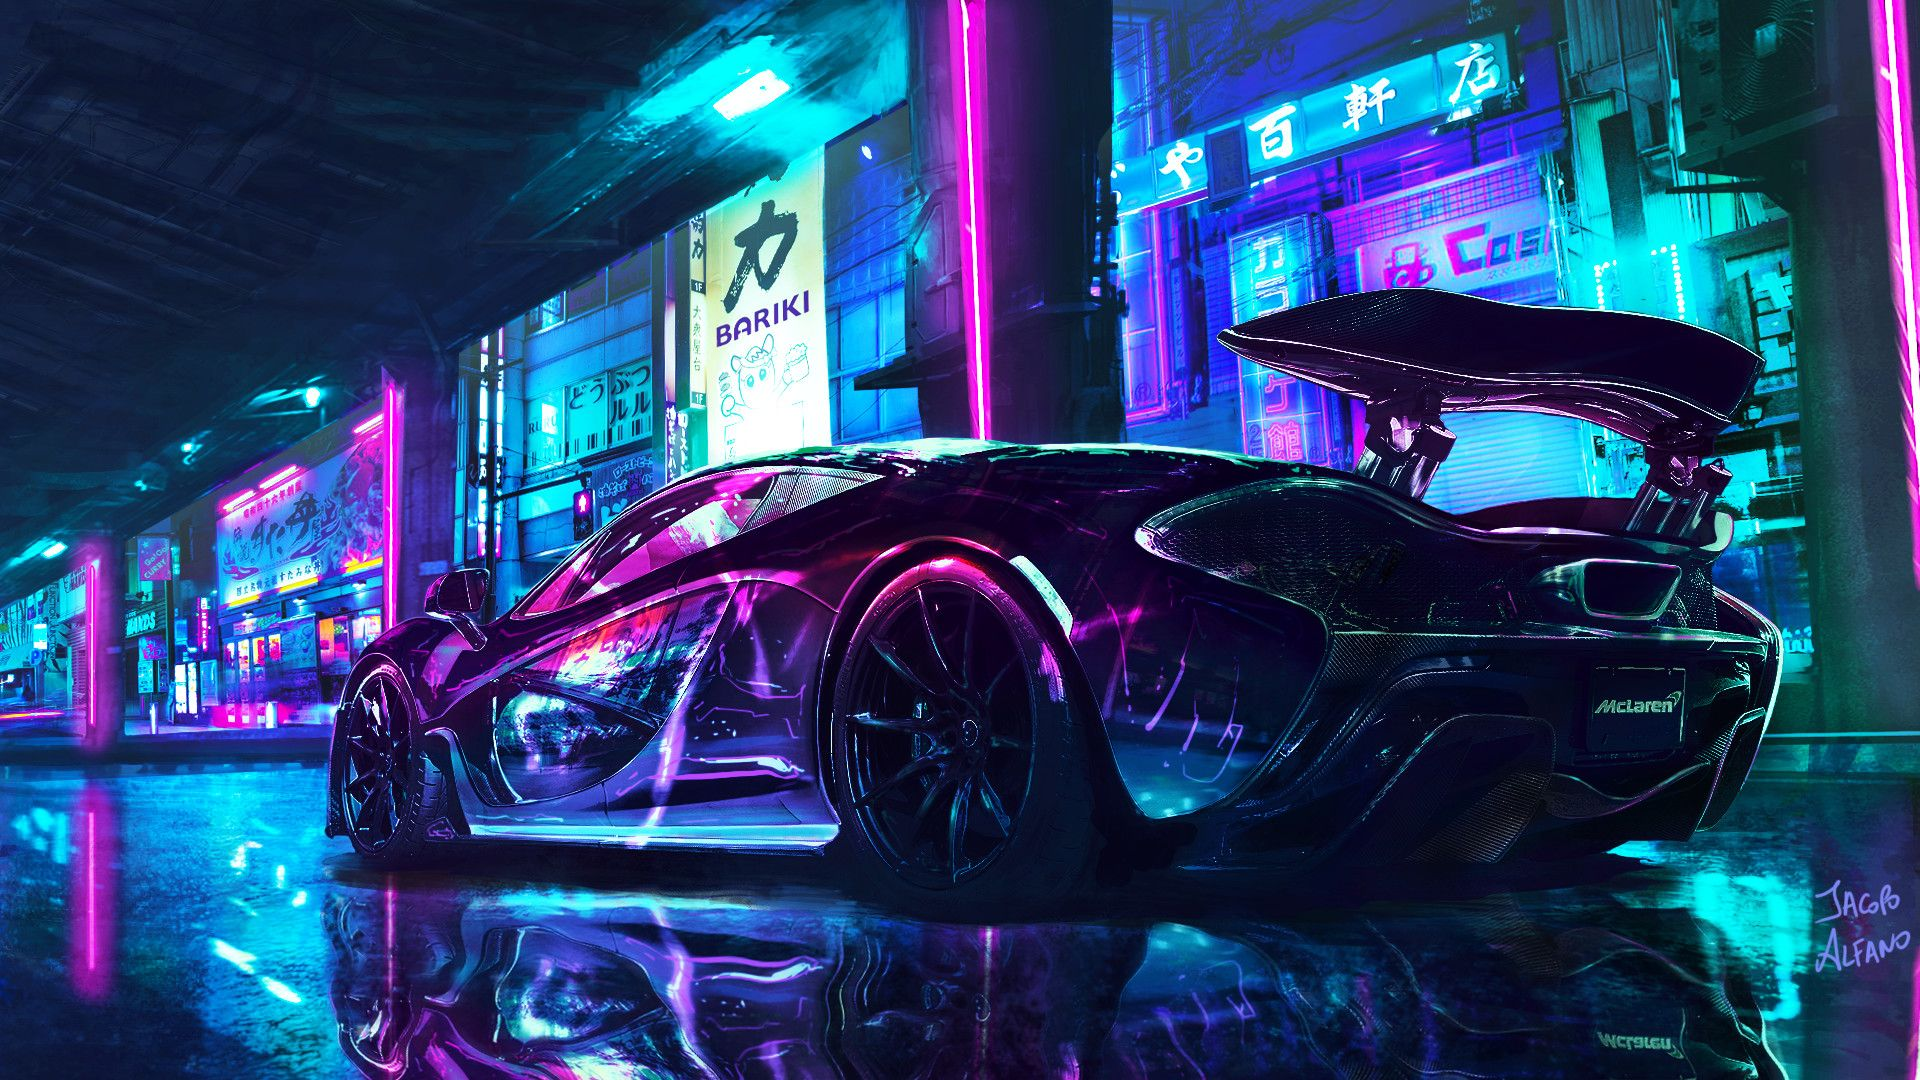 Neon Supercars Wallpapers On Wallpaperdog